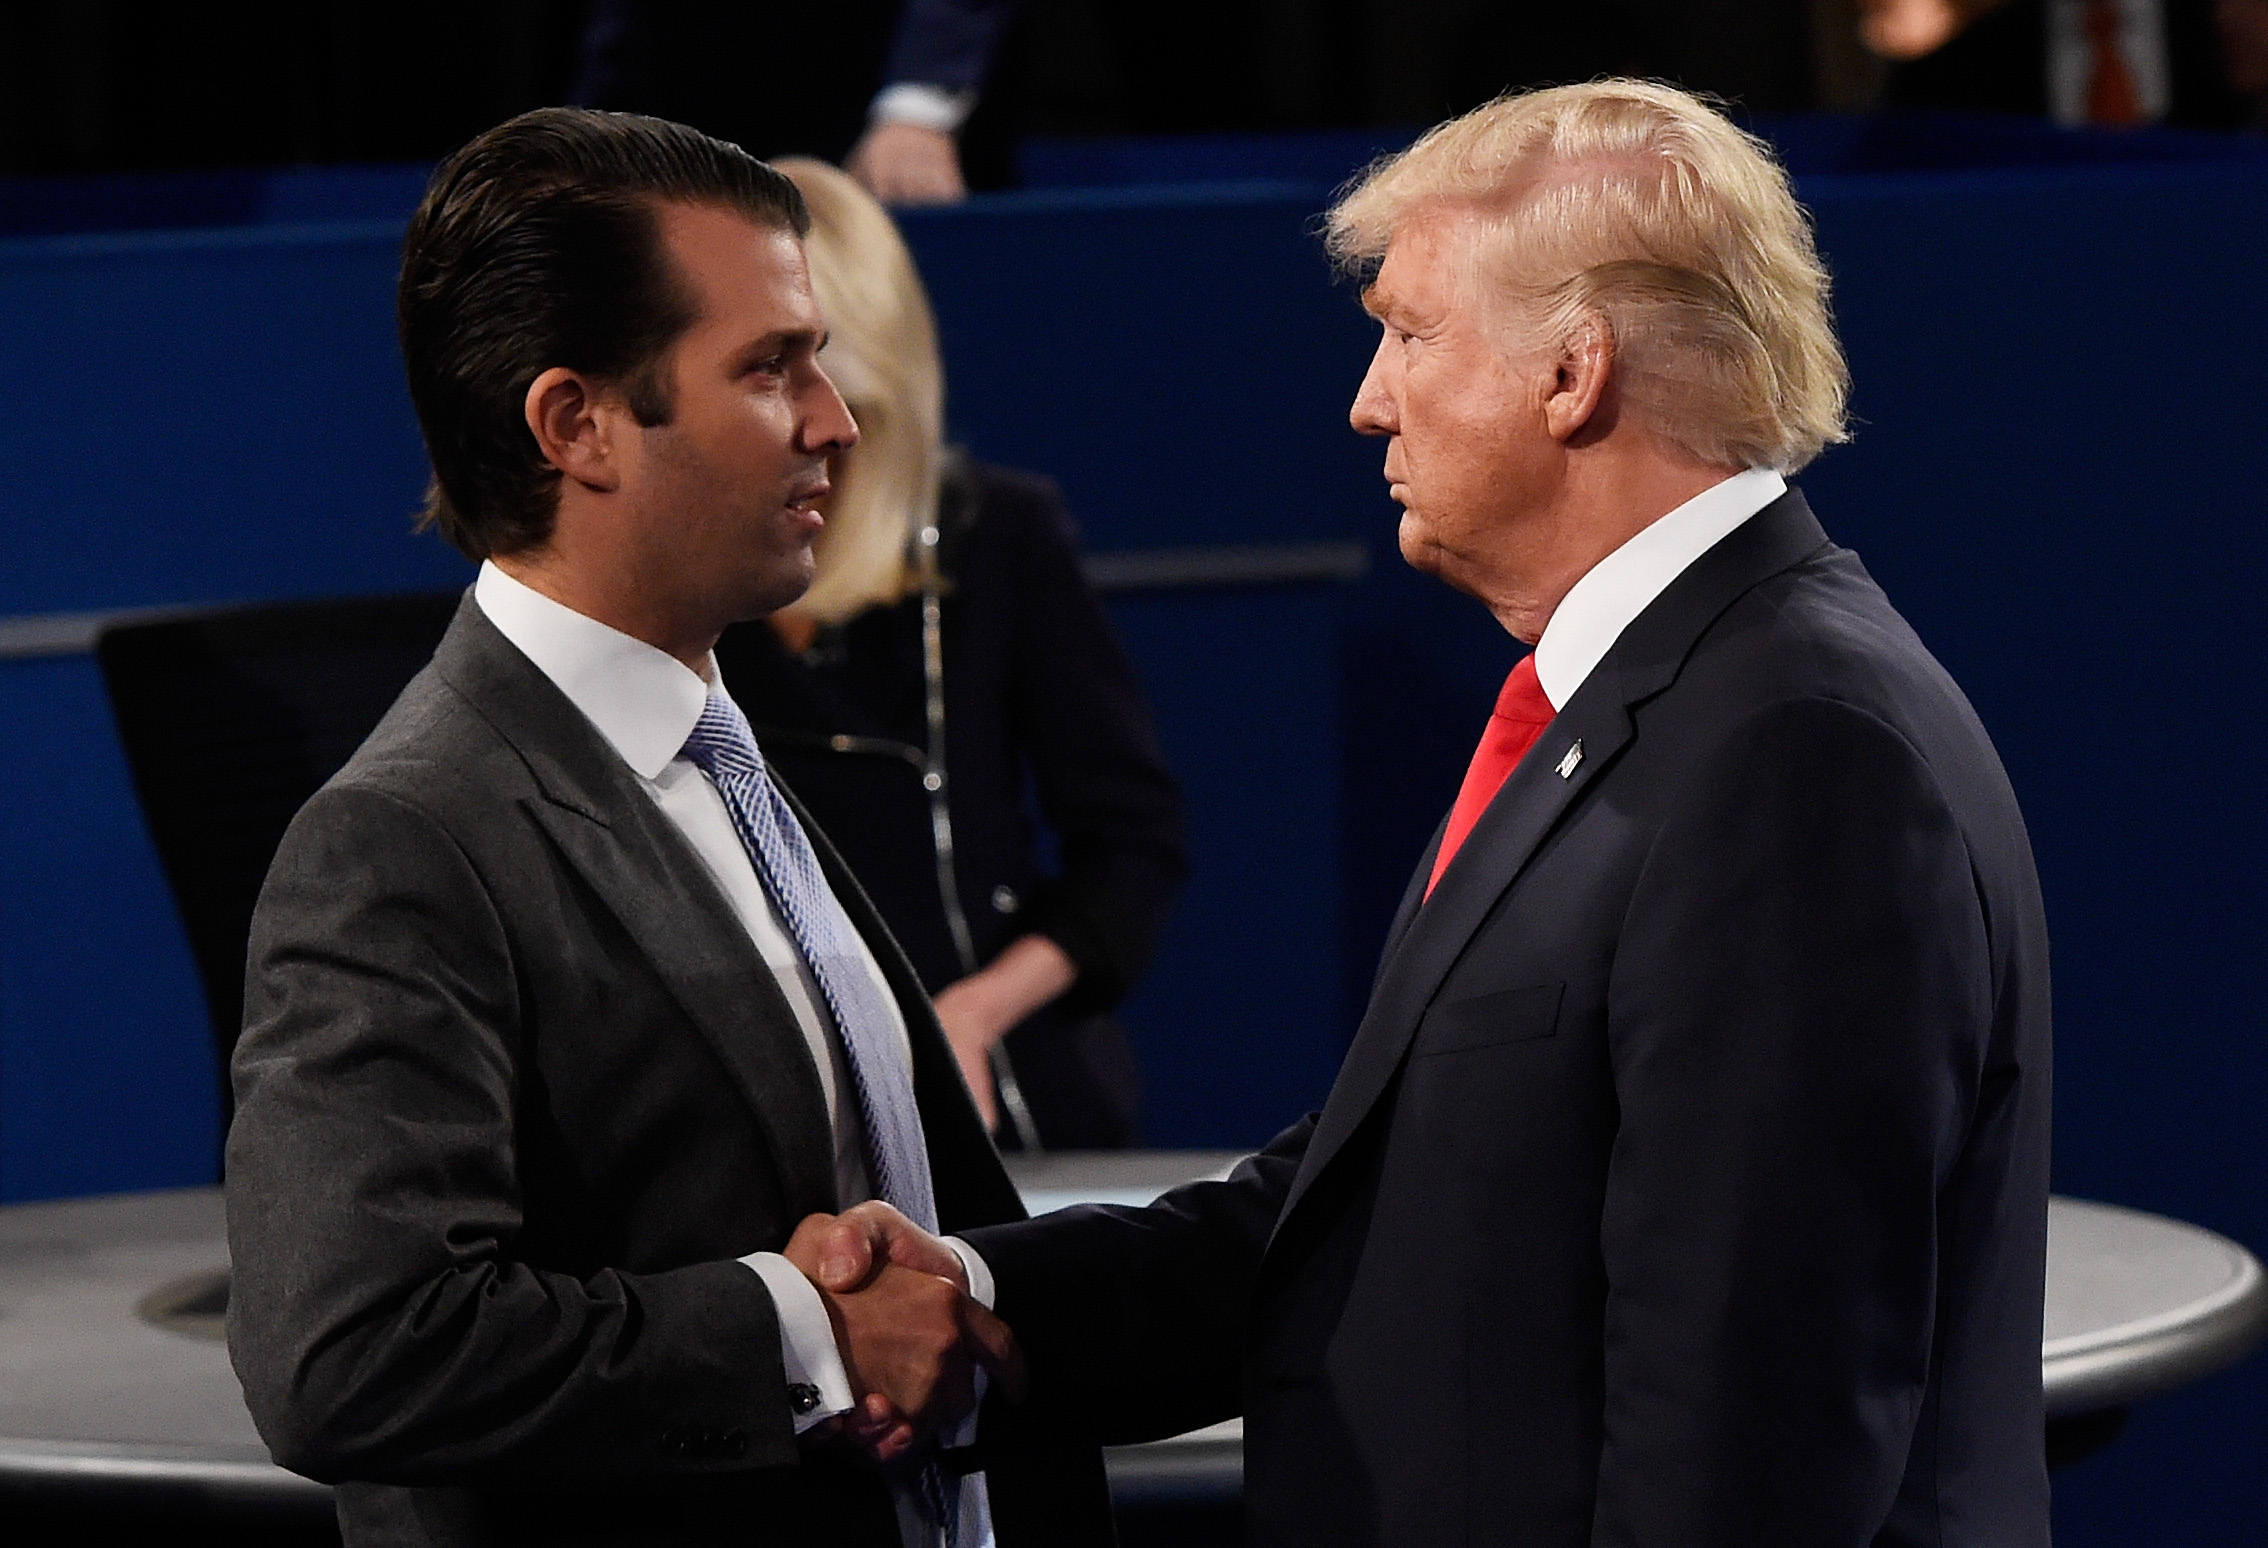 Donald Trump, Jr. (L) greets his father Republican presidential nominee Donald Trump during the town hall debate at Washington University on October 9, 2016 in St Louis, Missouri. (Getty Images)